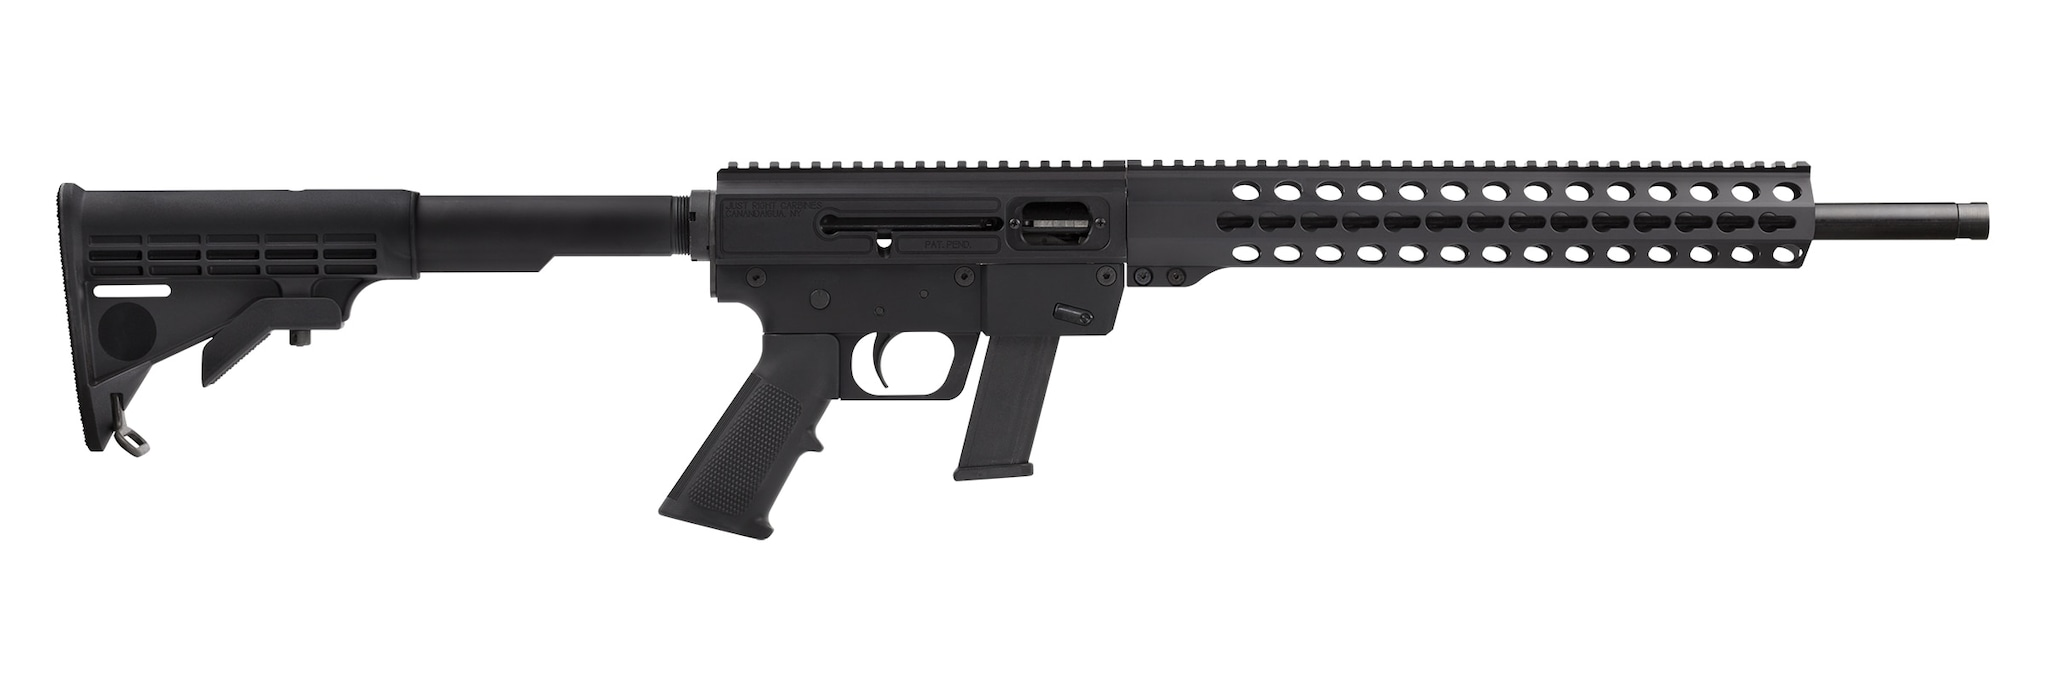 The .40 caliber Glock-magazine KeyMod rail model Just Right Carbine, made in Canandaigua, New York, is slated for adoption by the Buffalo Police Department. (Photo; JRC)